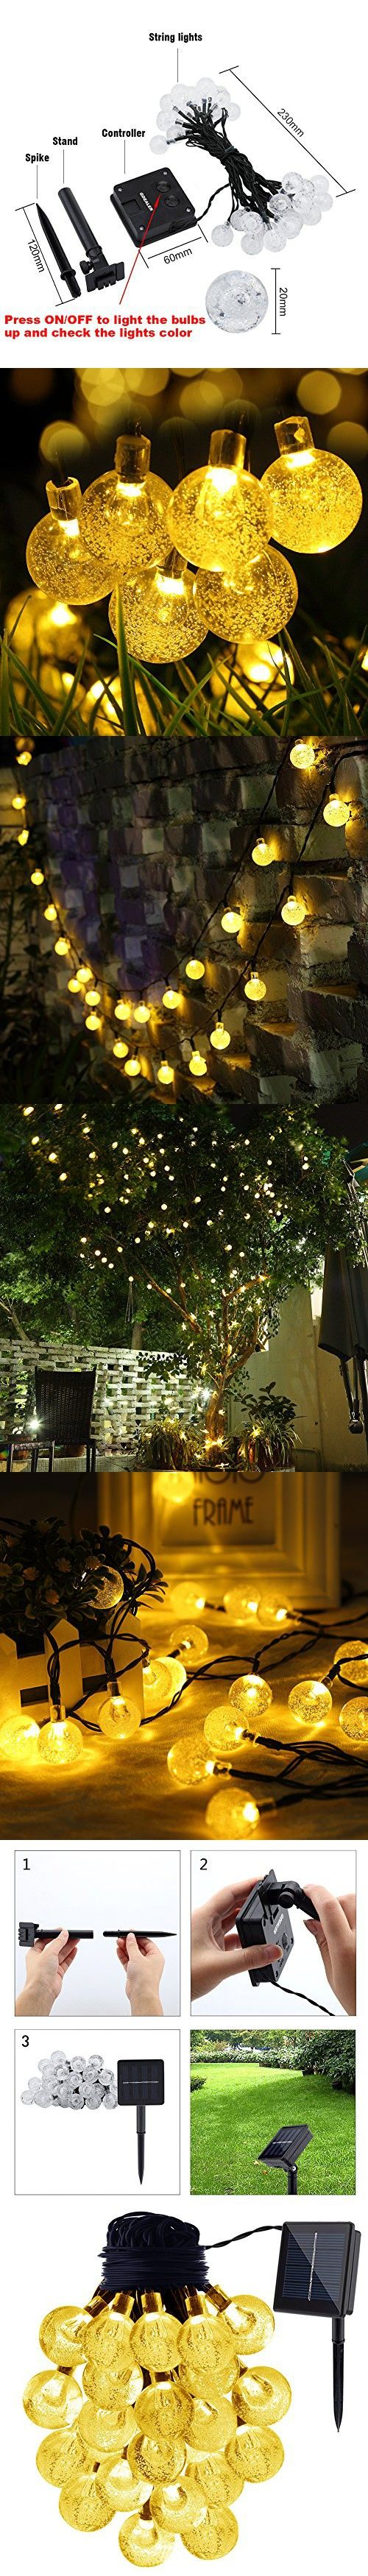 GDEALER Solar String Lights 20ft 30 LED Warm White Crystal Ball Waterproof Outdoor String Lights Solar Powered Globe Fairy String Lights for Garden, Home, Landscape, Christmas Decoration (1)